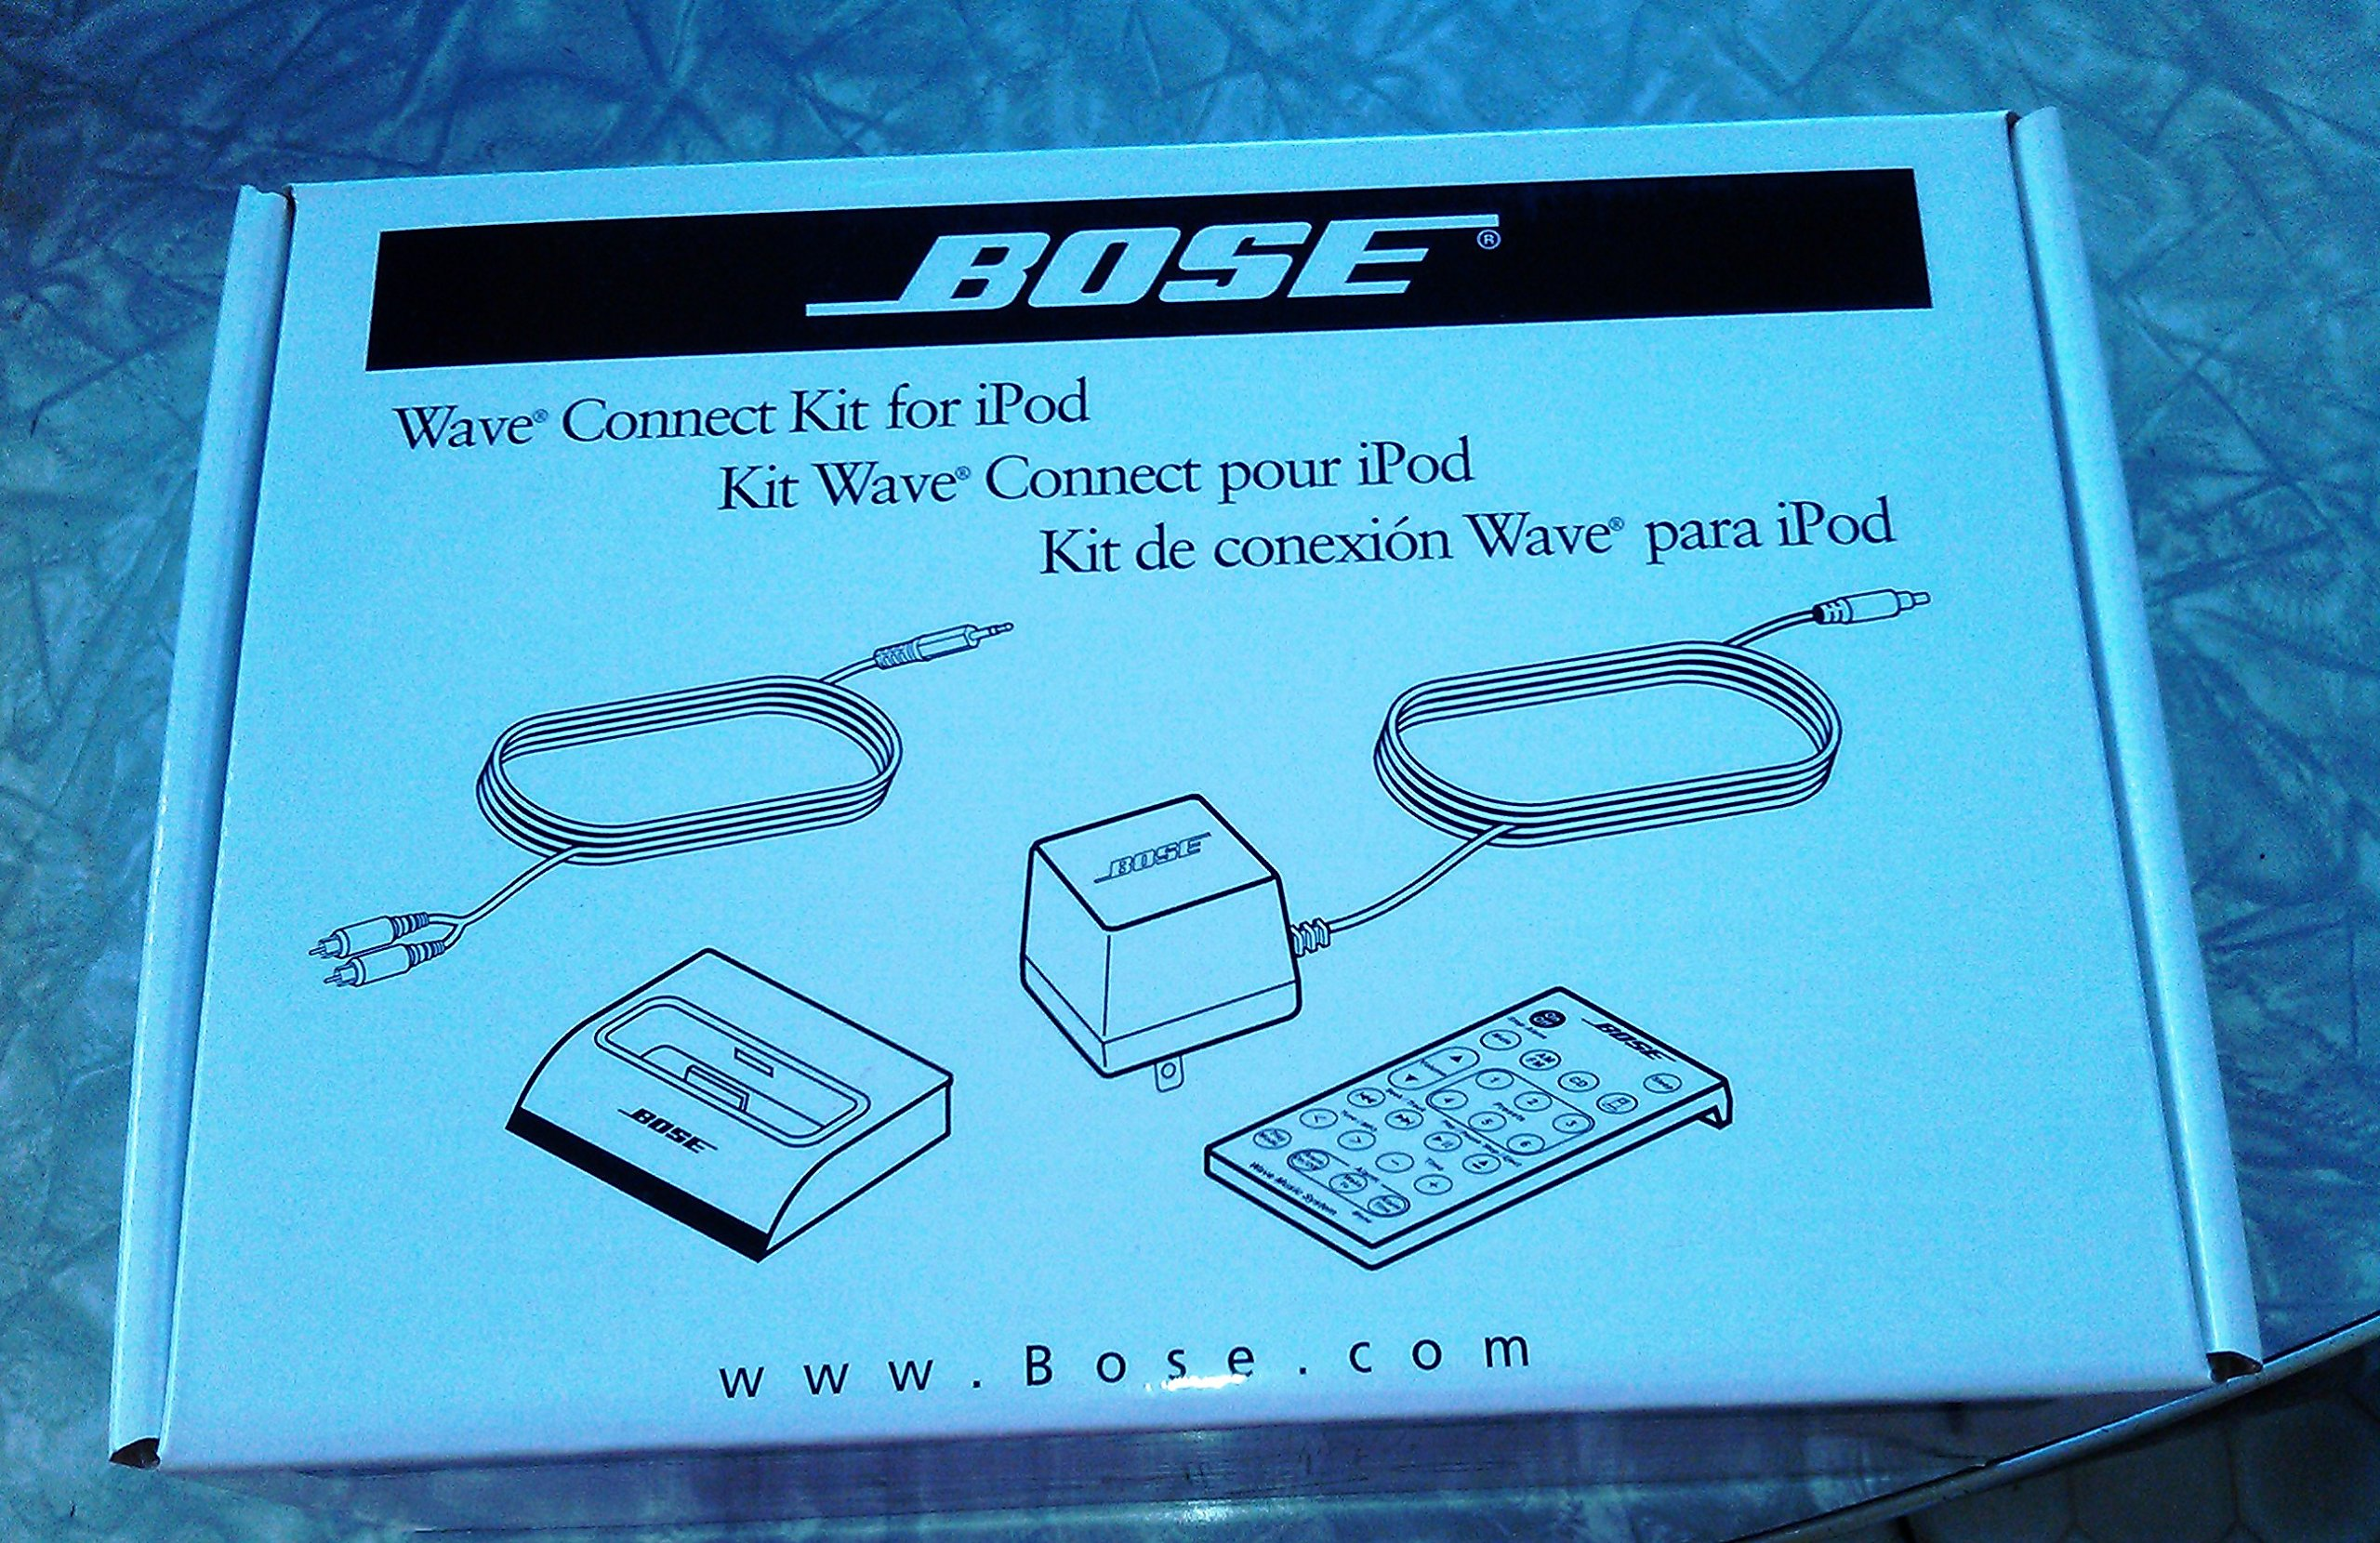 Wave Connect Kit by Bose